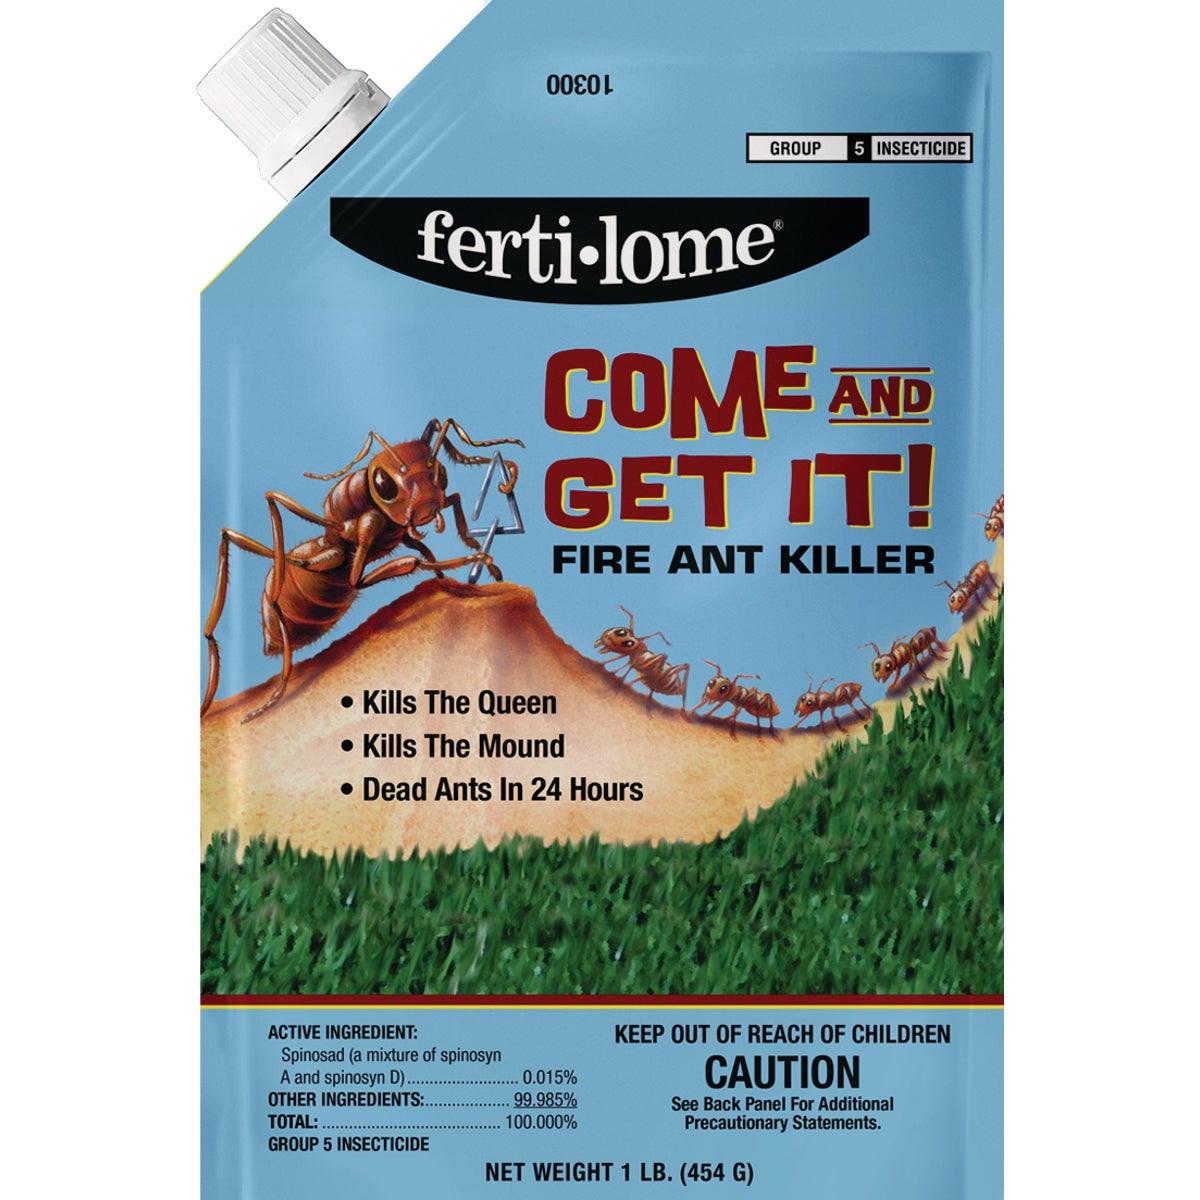 1LB FIRE ANT KILLER - 10300 by Vpg Fertilome